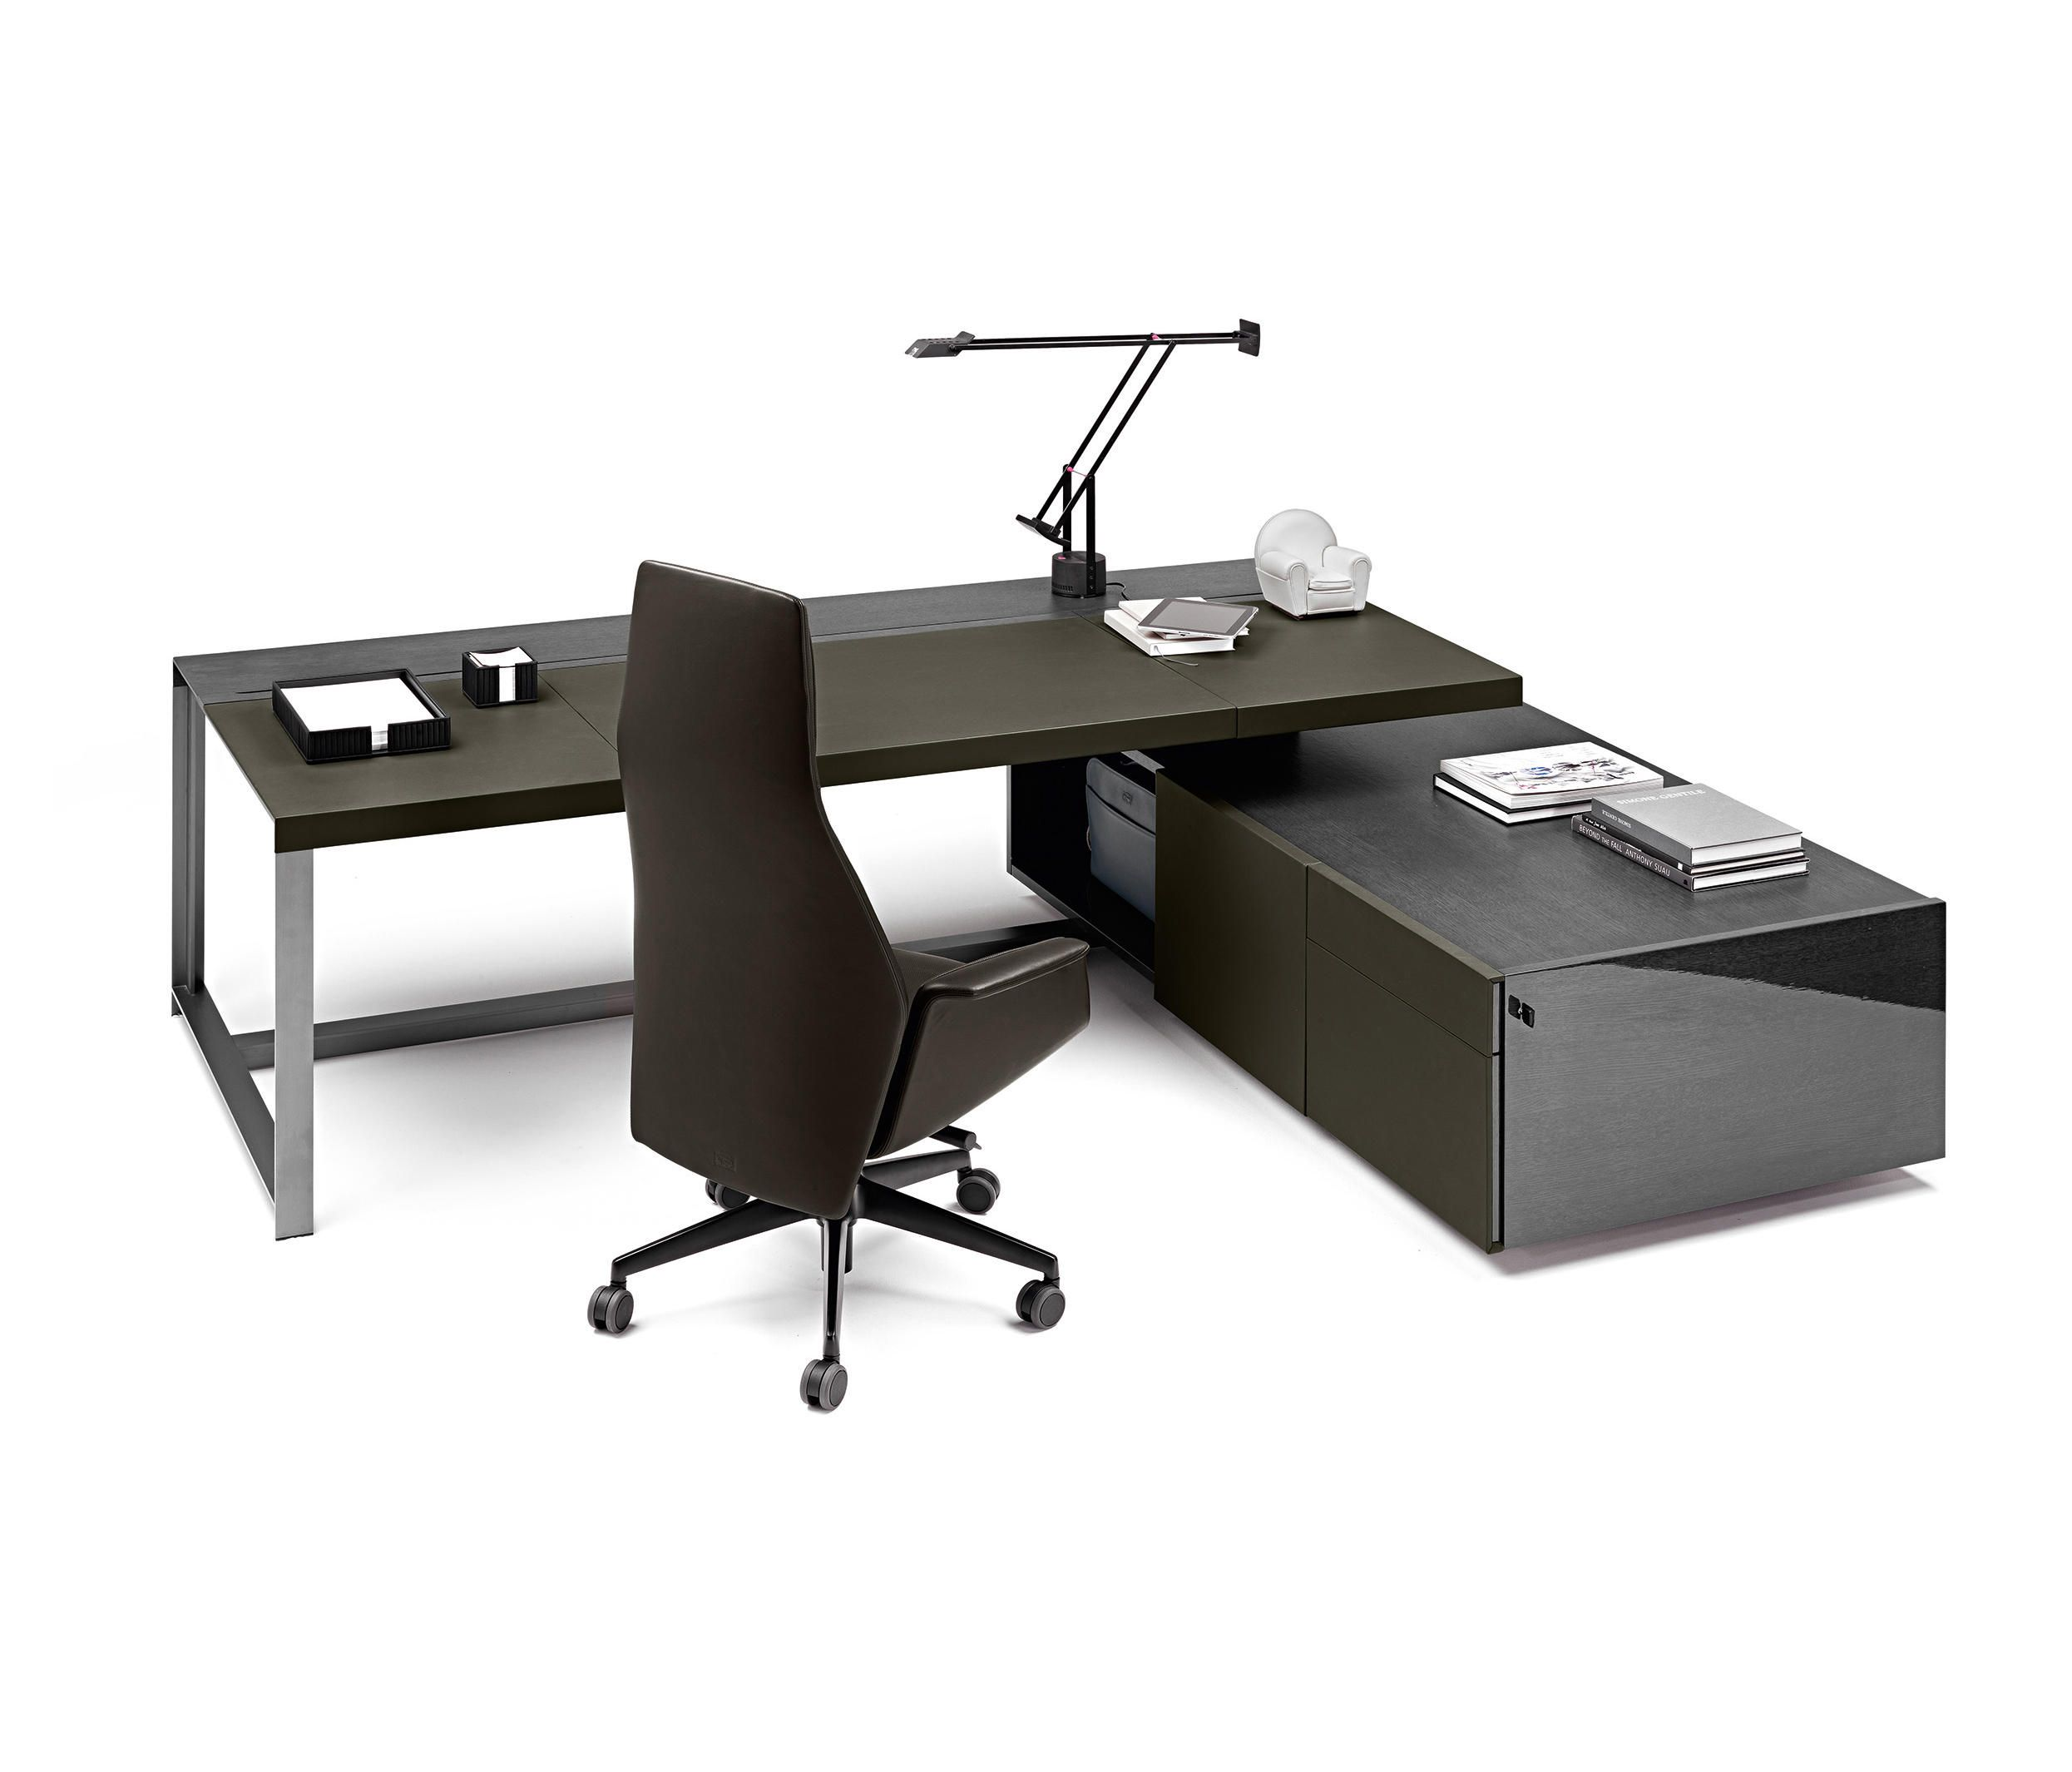 president office furniture. Desks President Office Furniture N